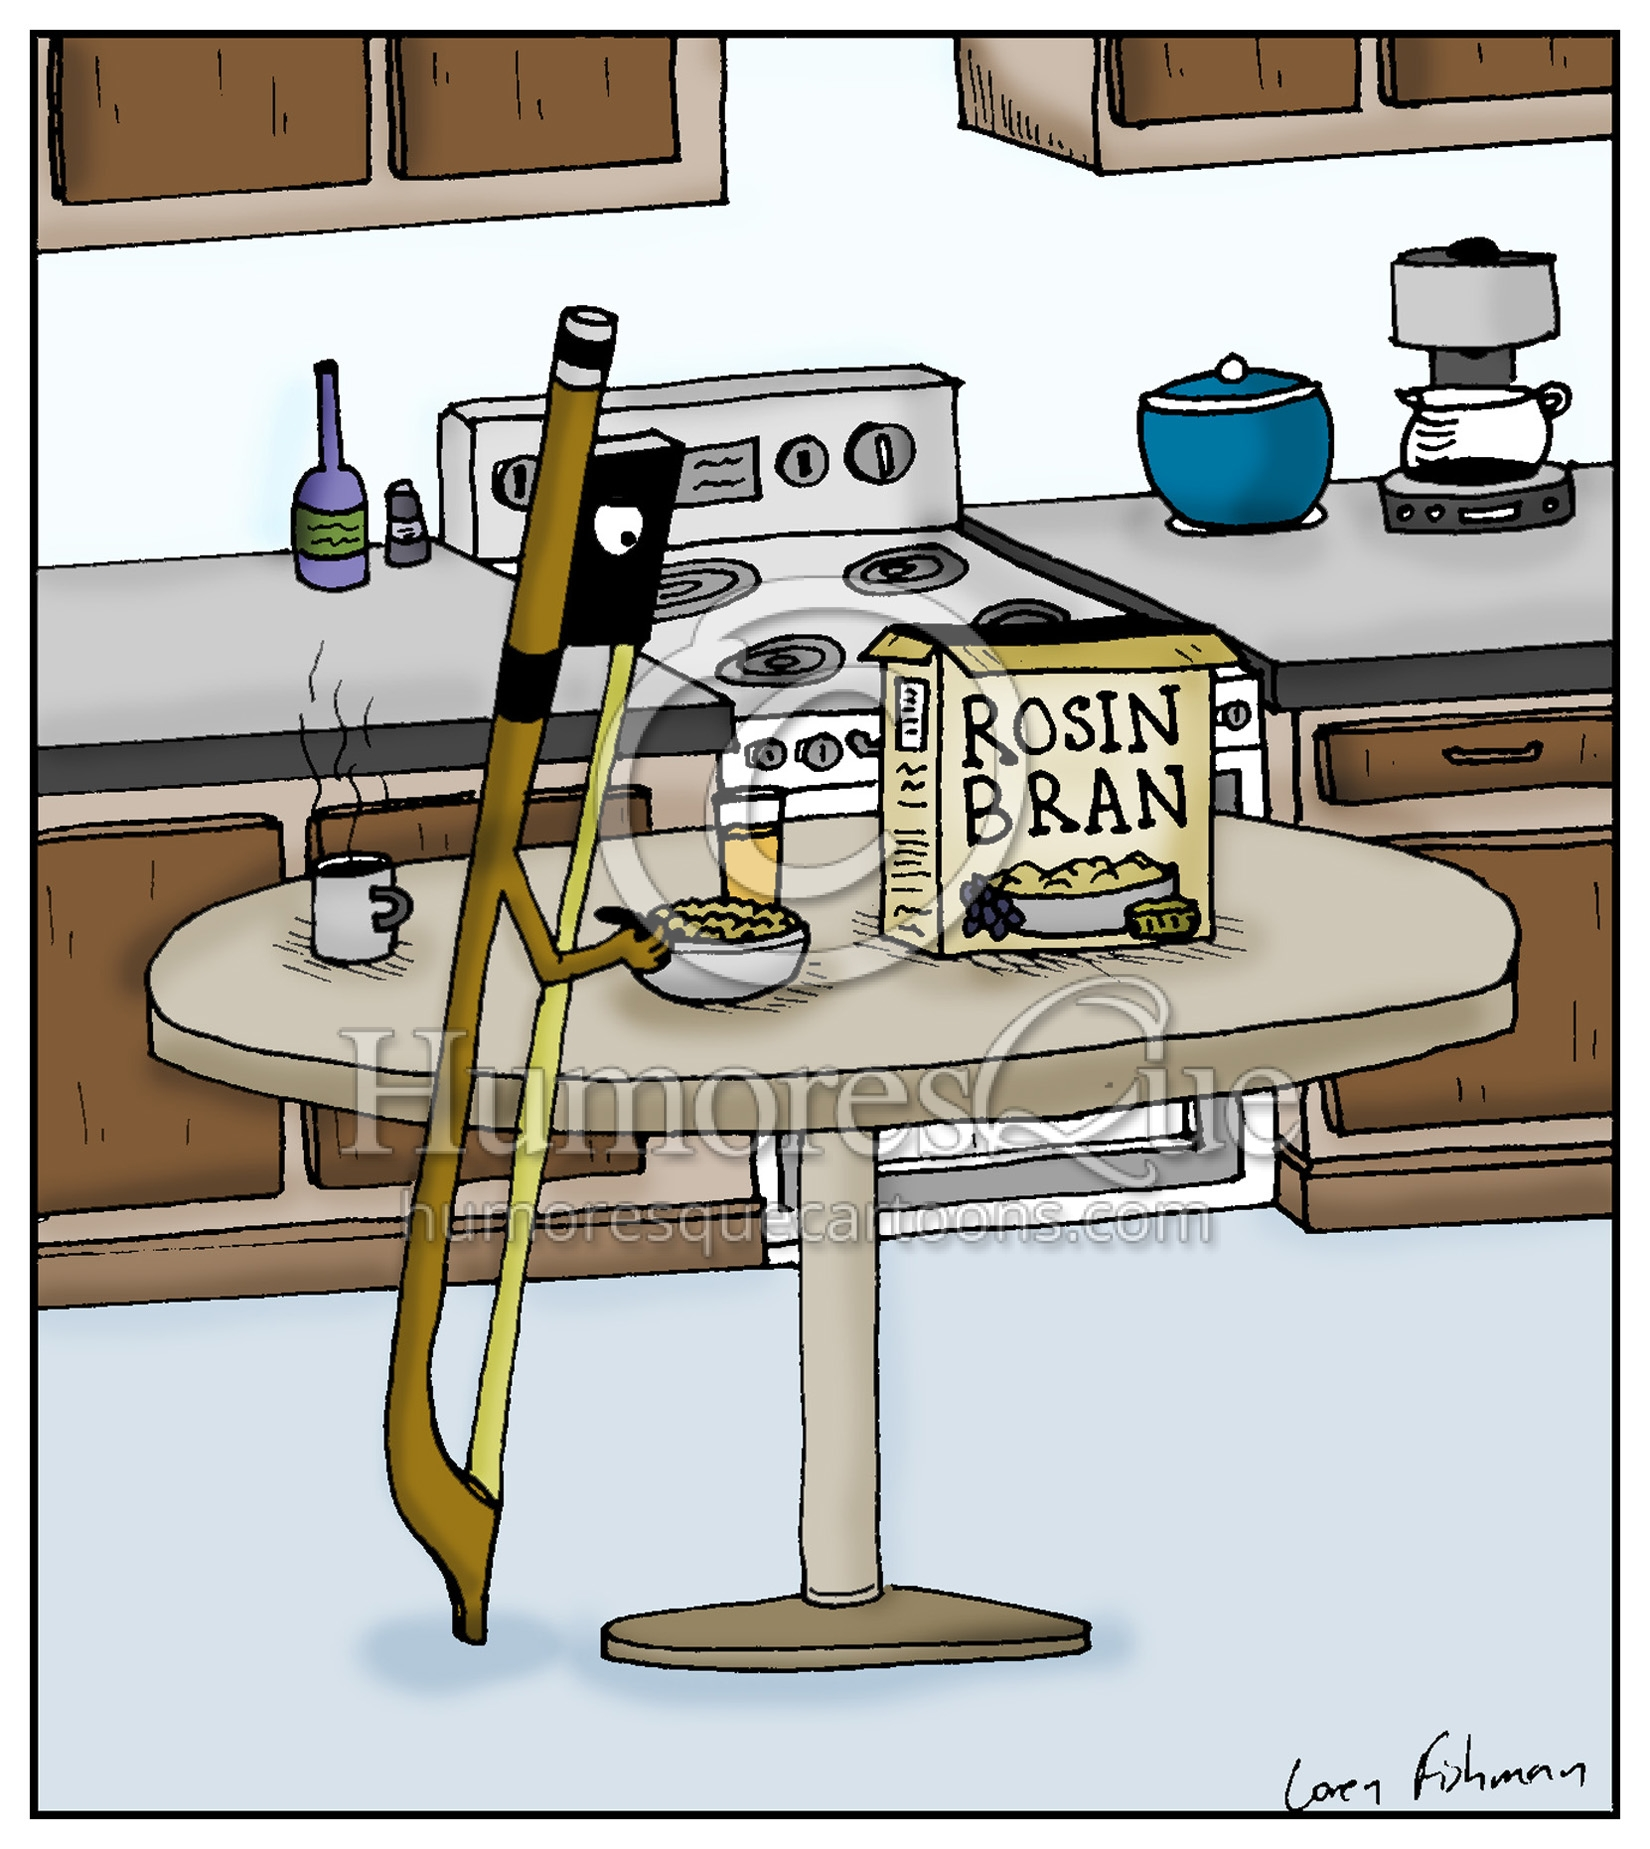 rosin bran bow eating rosin cereal strings cartoon